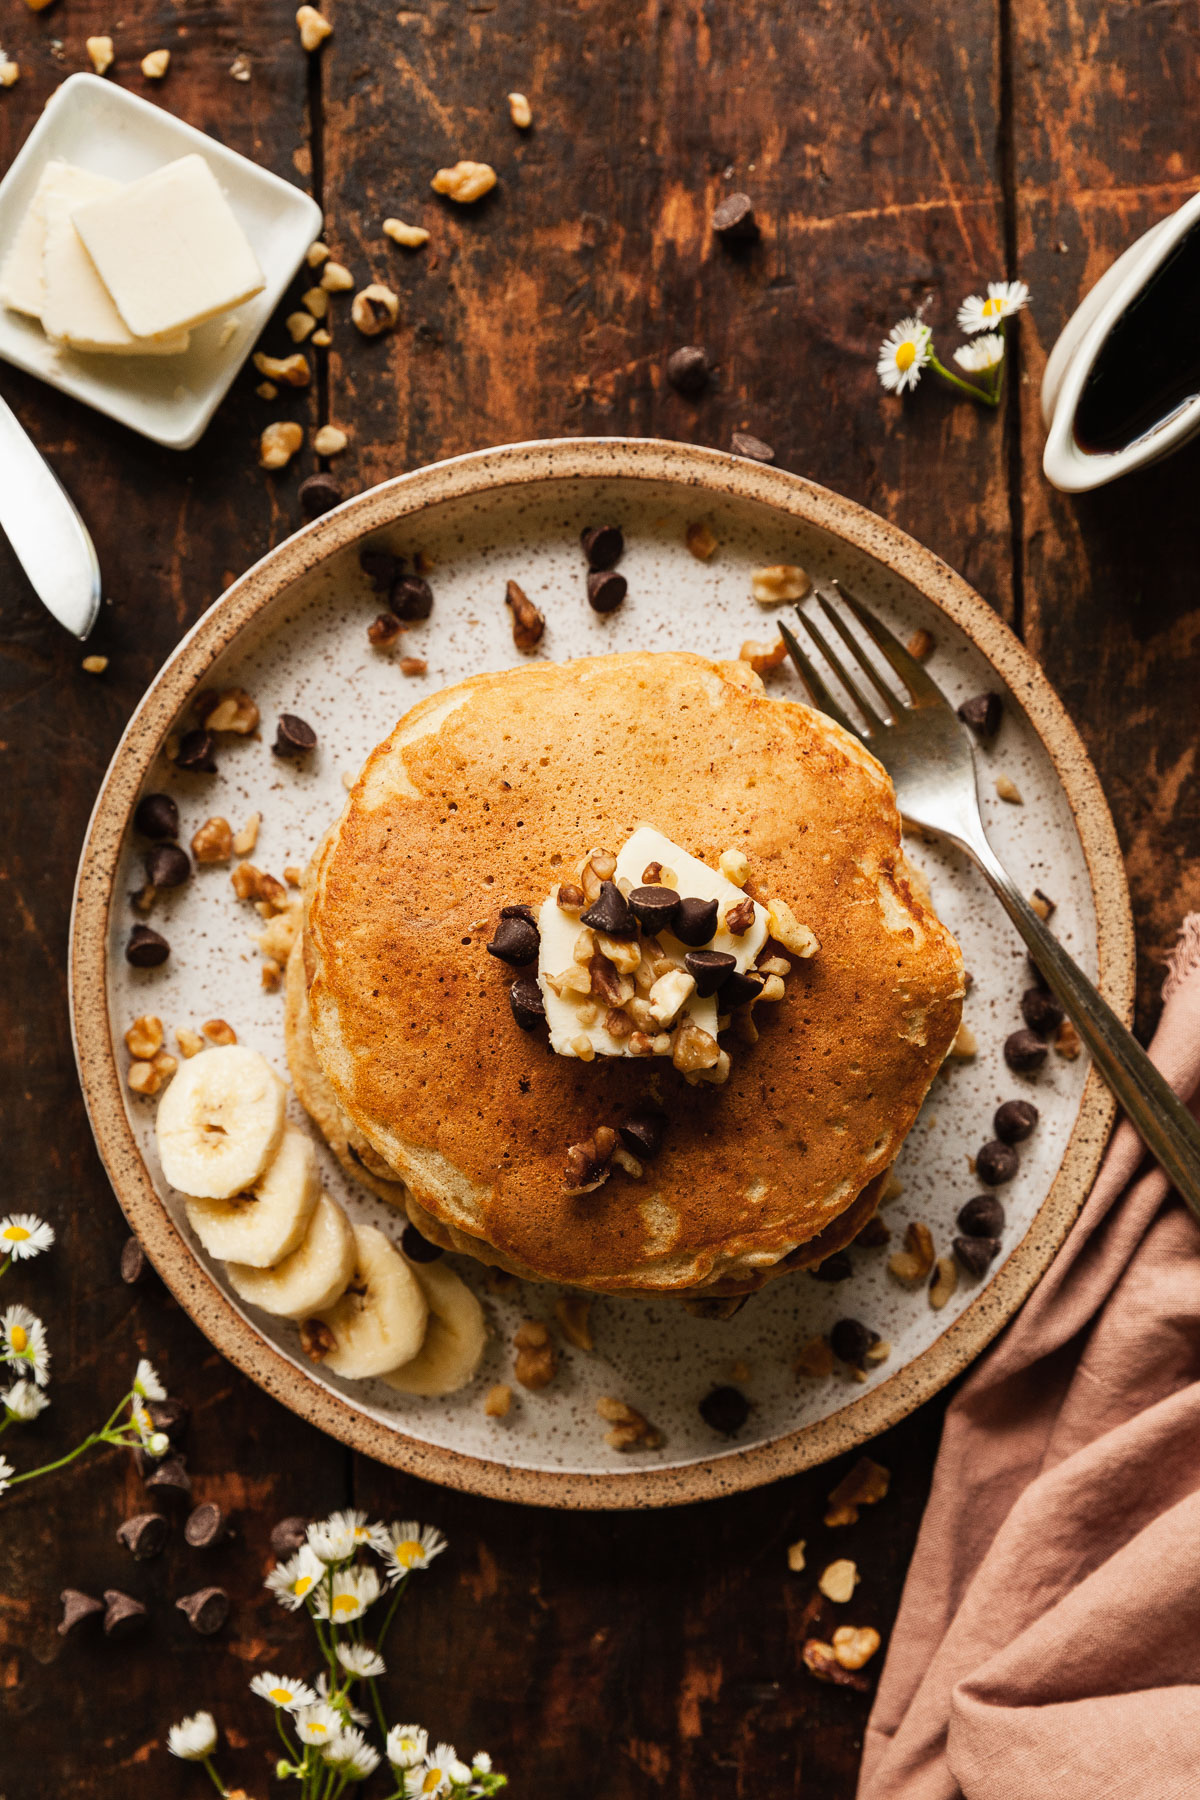 top view image of banana walnut pancakes on plate with fork on plate scattered with chocolate chips walnuts and flowers on table